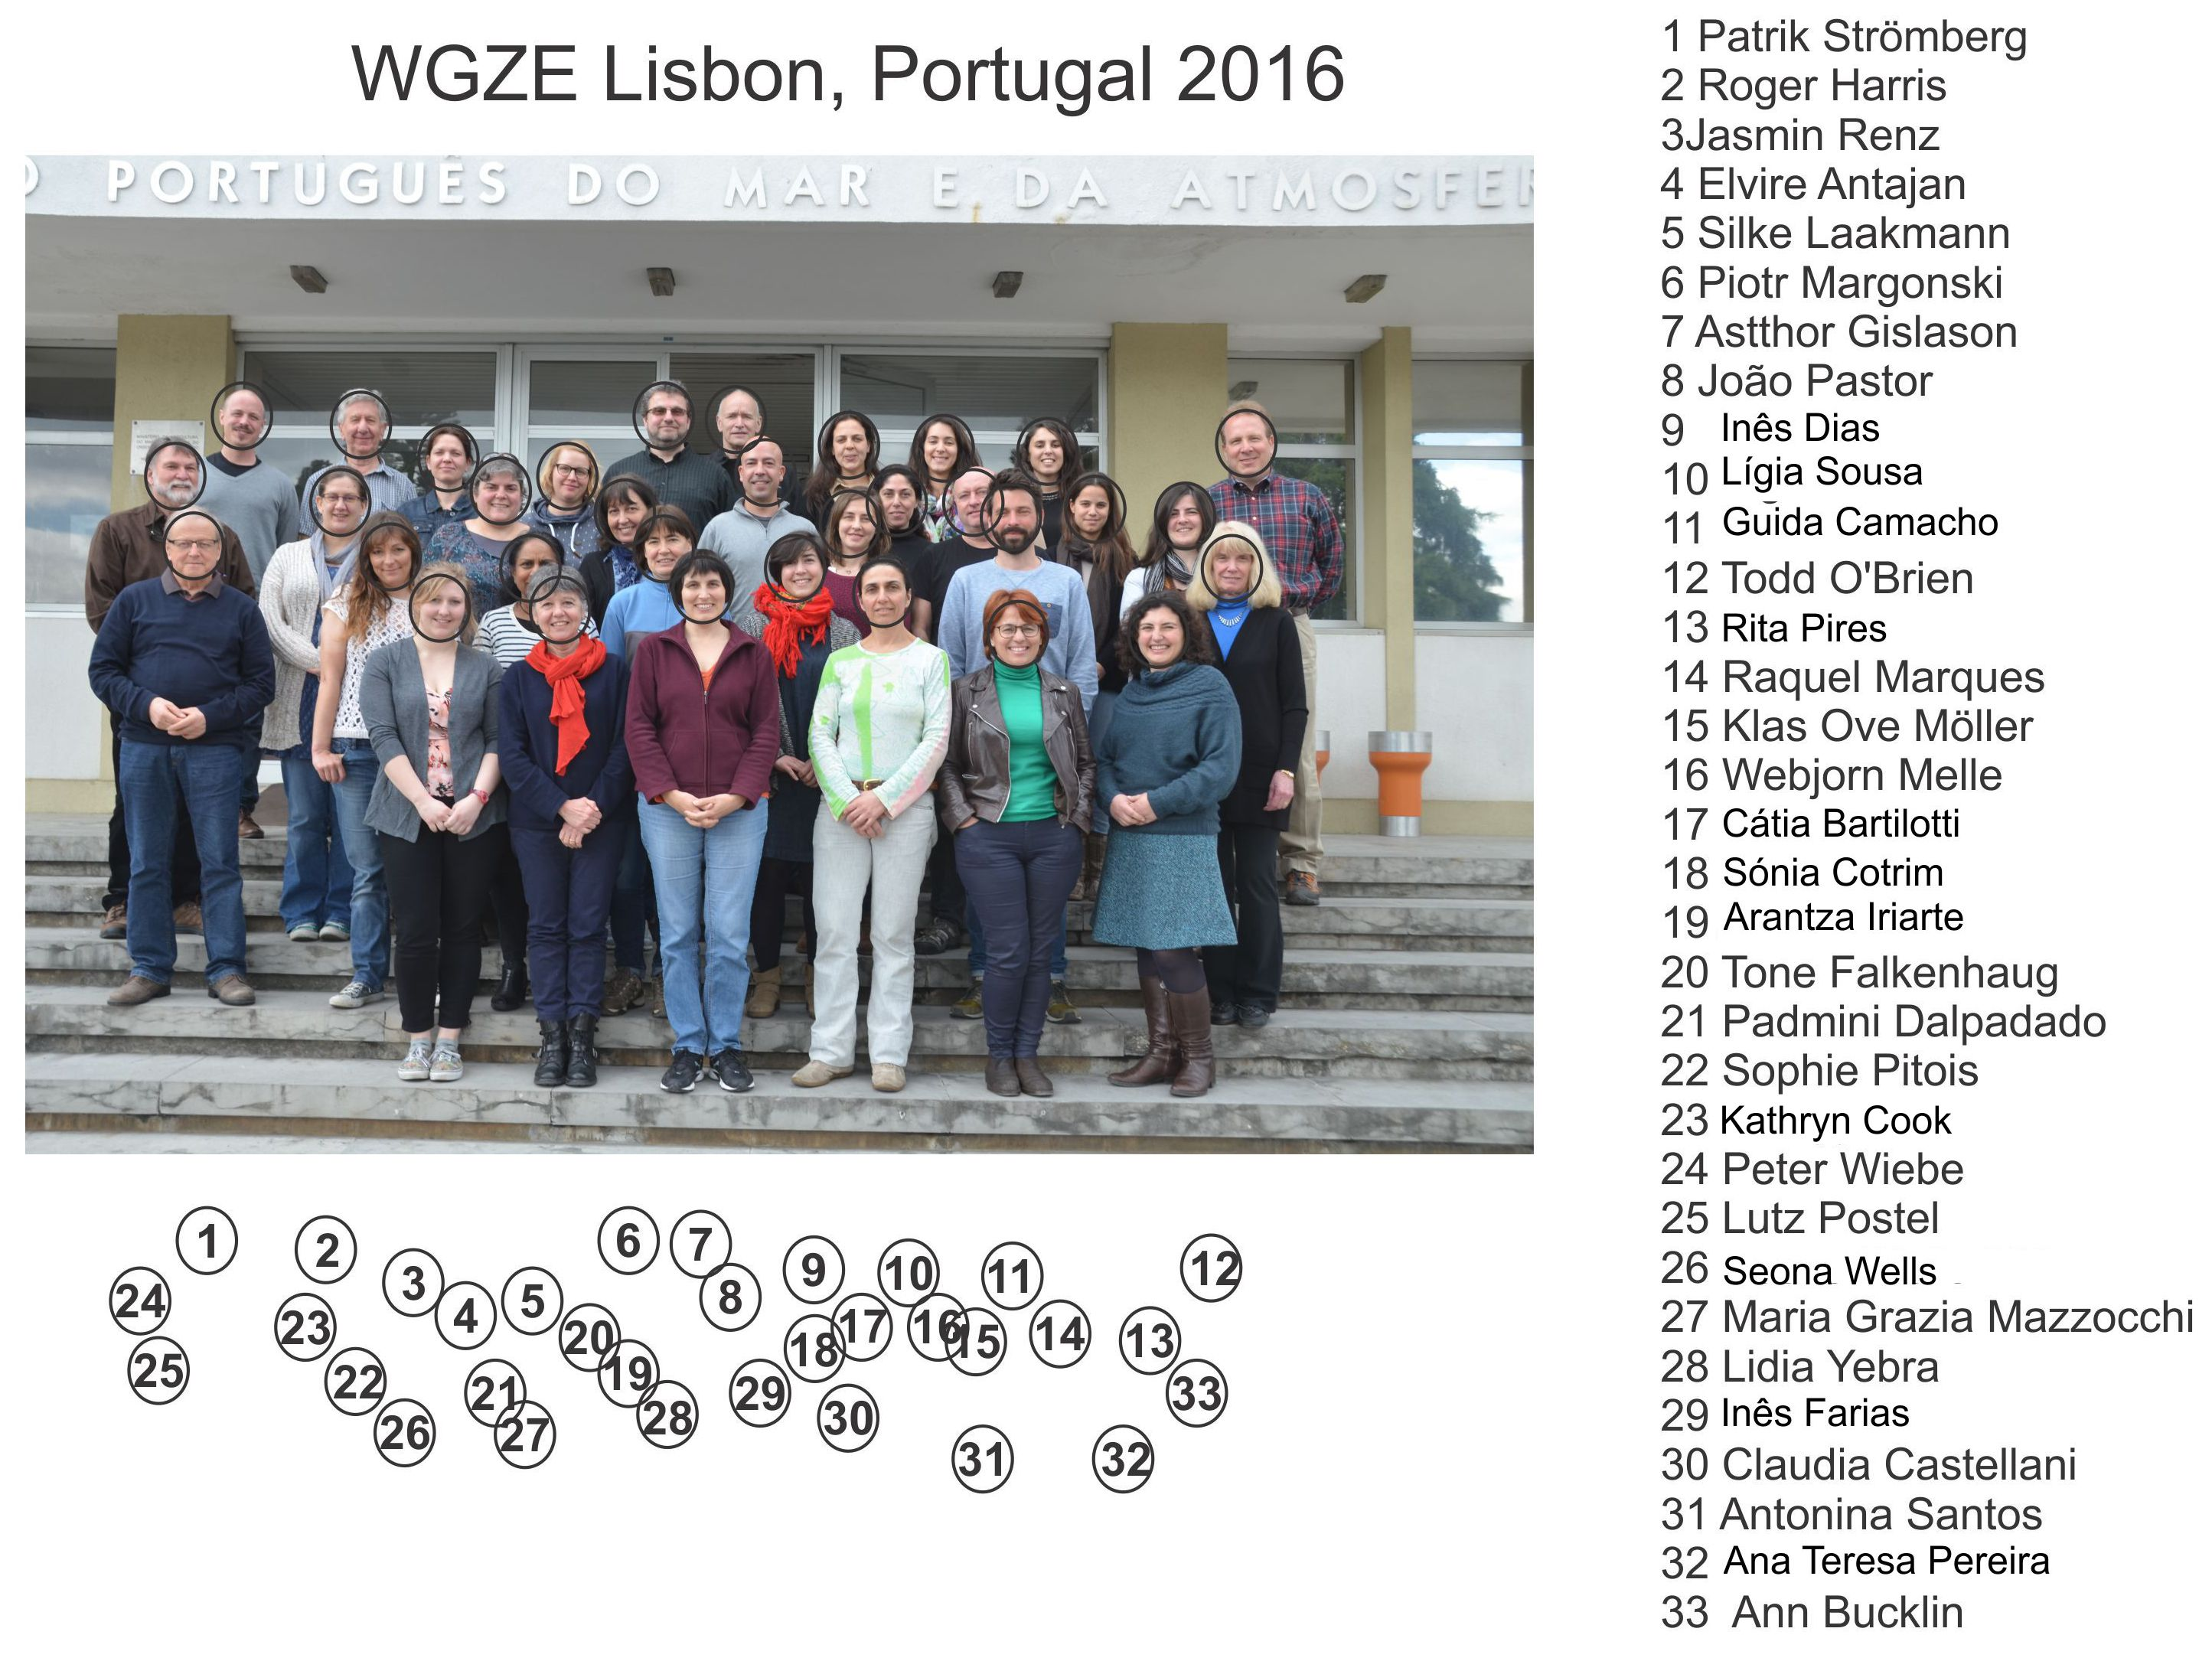 wgze 2016 portugal with names